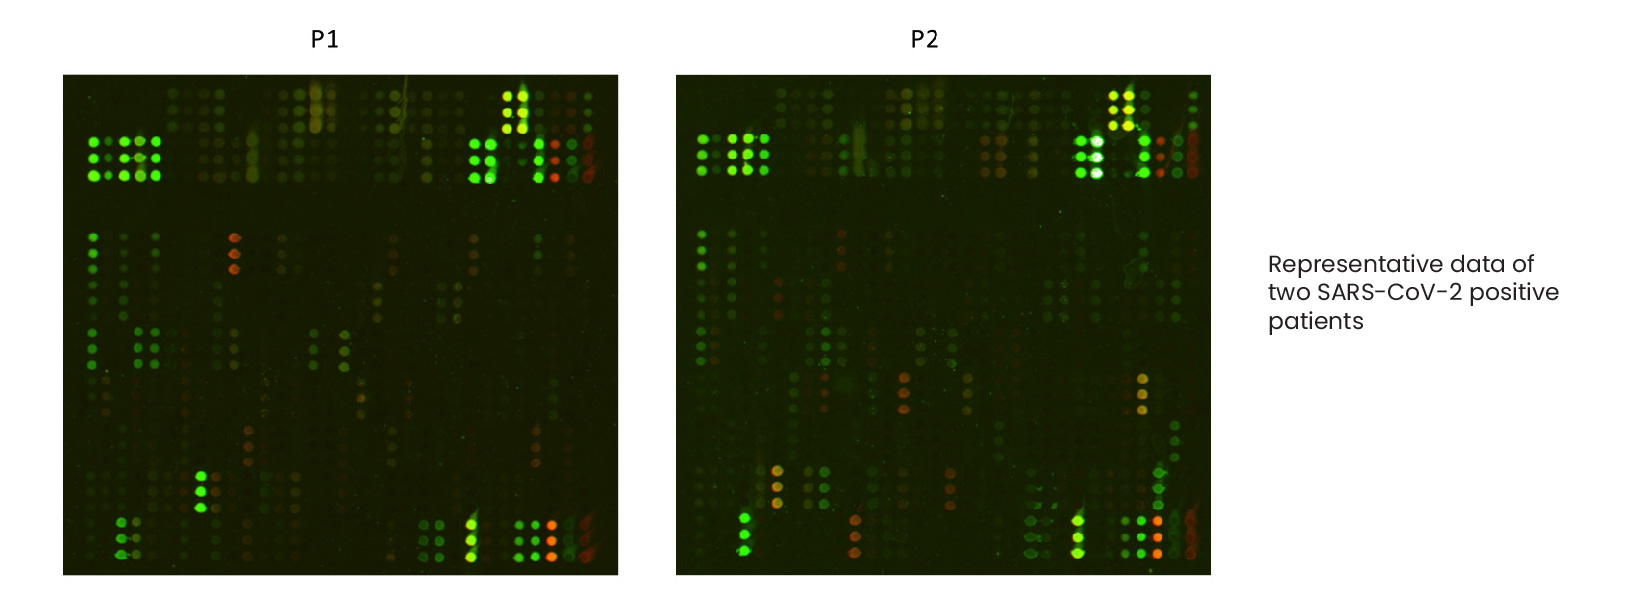 Example-Patient-Data-for-CDI-Labs-SARS-CoV-2-COVID-19-Microarray-Peptides-Protein